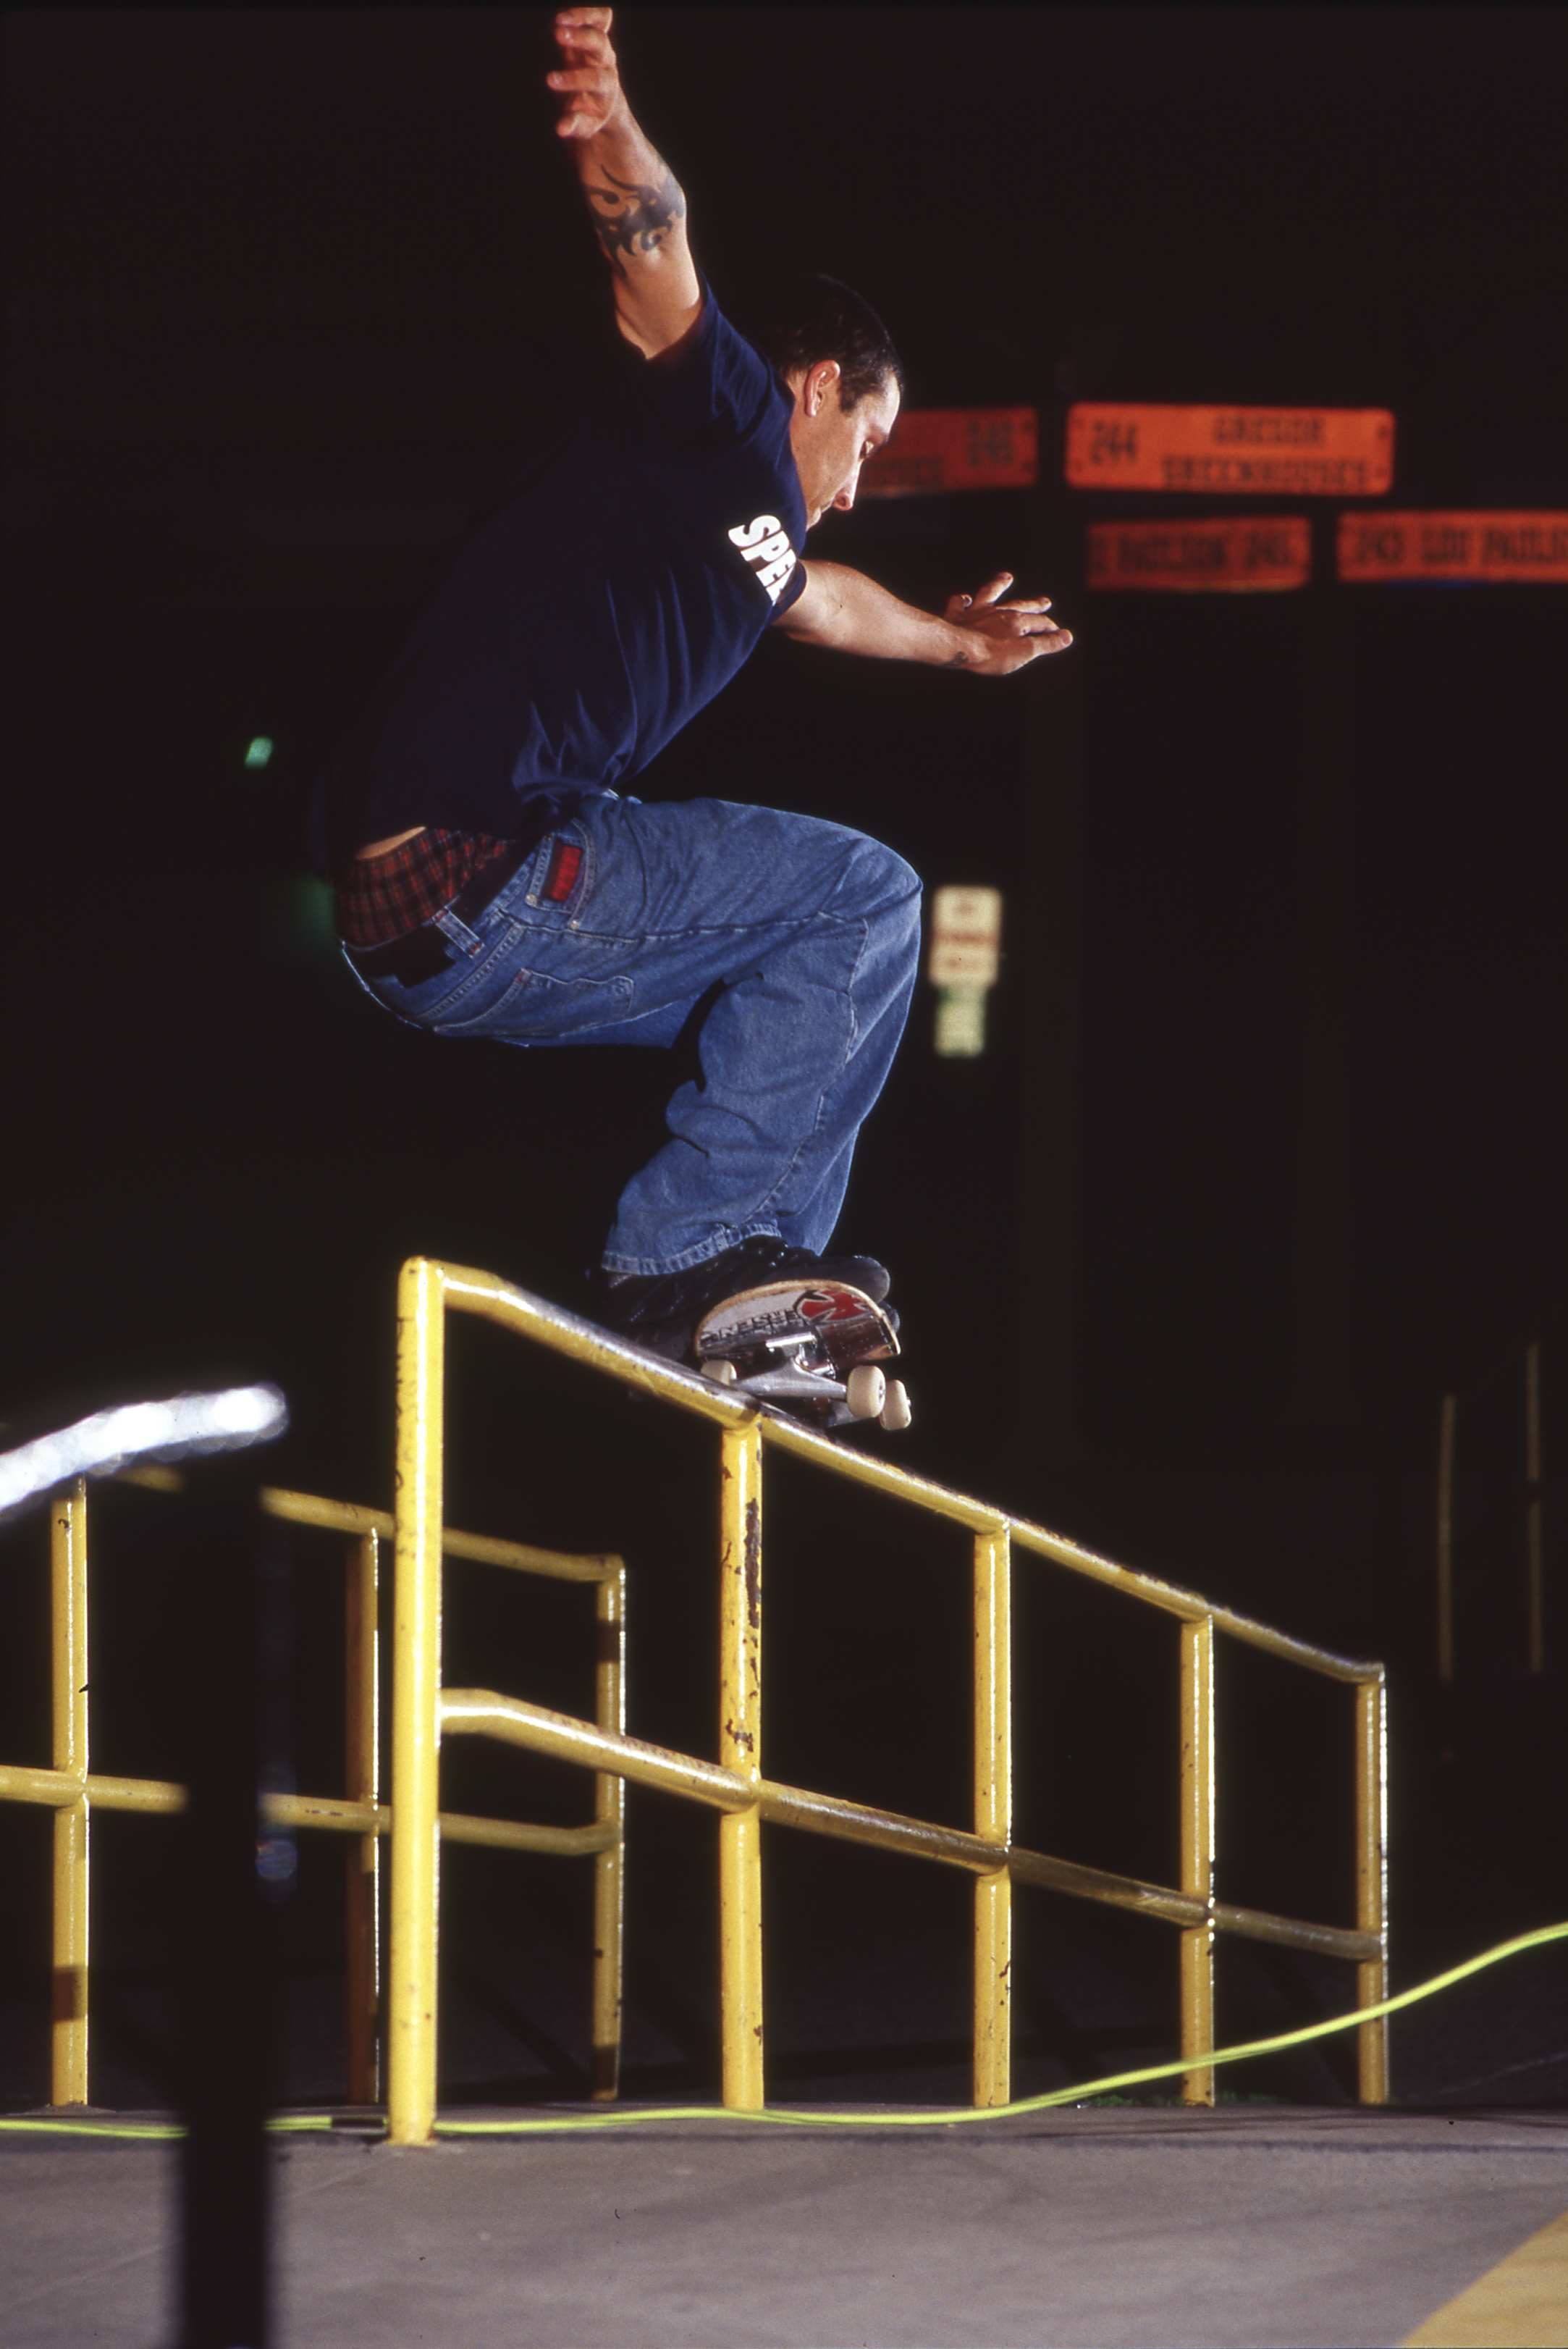 Steve Nesser 50-50 at the Farmers Market. Shout out to  Speed Metal bearings .